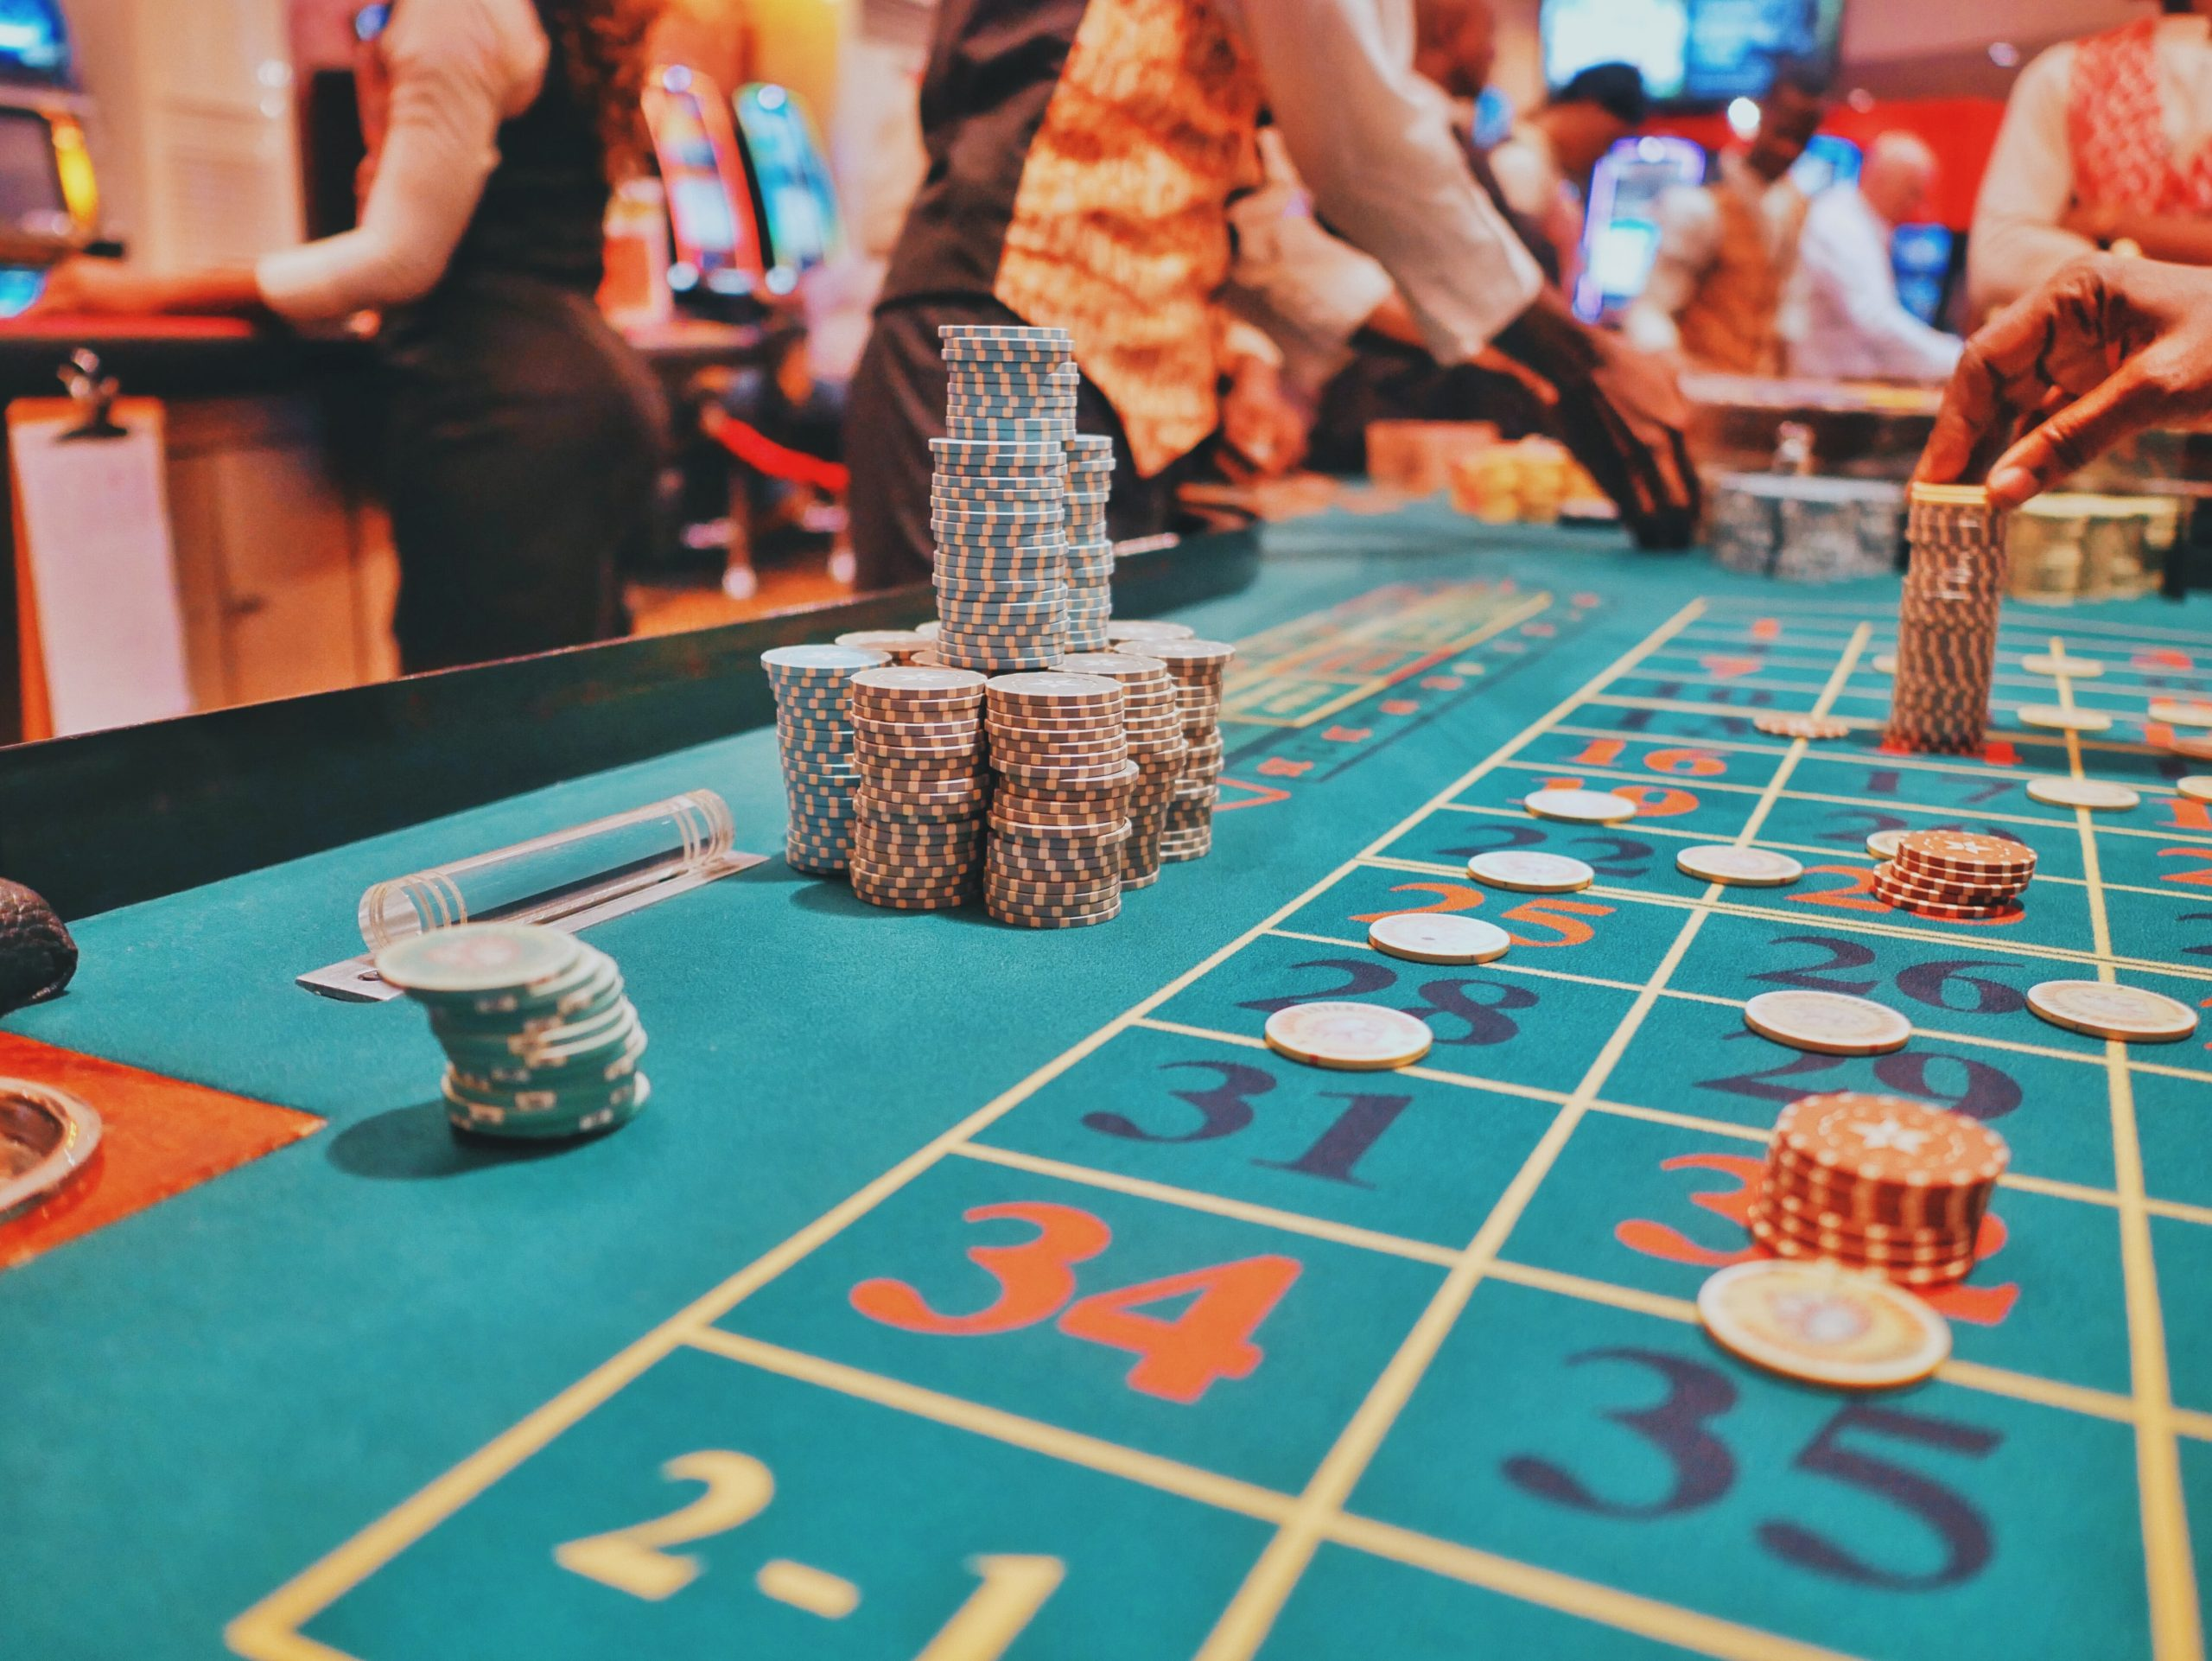 New Tips And Tricks When It Comes To Winning In Casinos